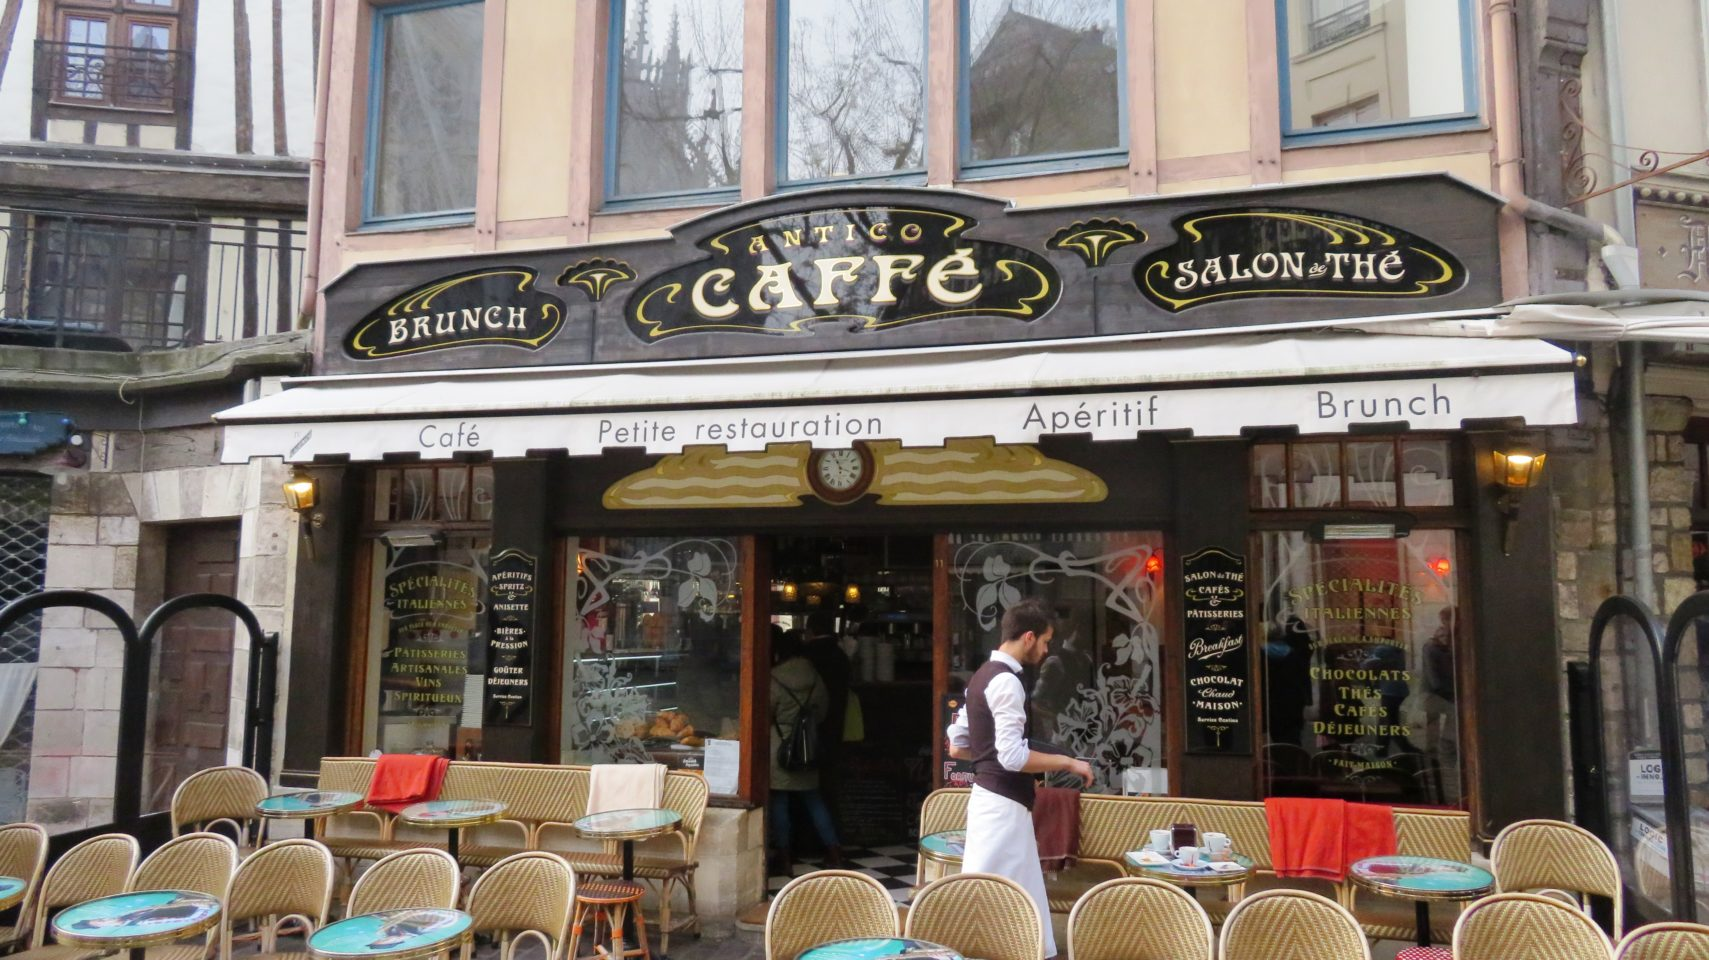 Antico Caffe in Rouen, Normandie, France (Paris and Normandie AMAWaterways Cruise)